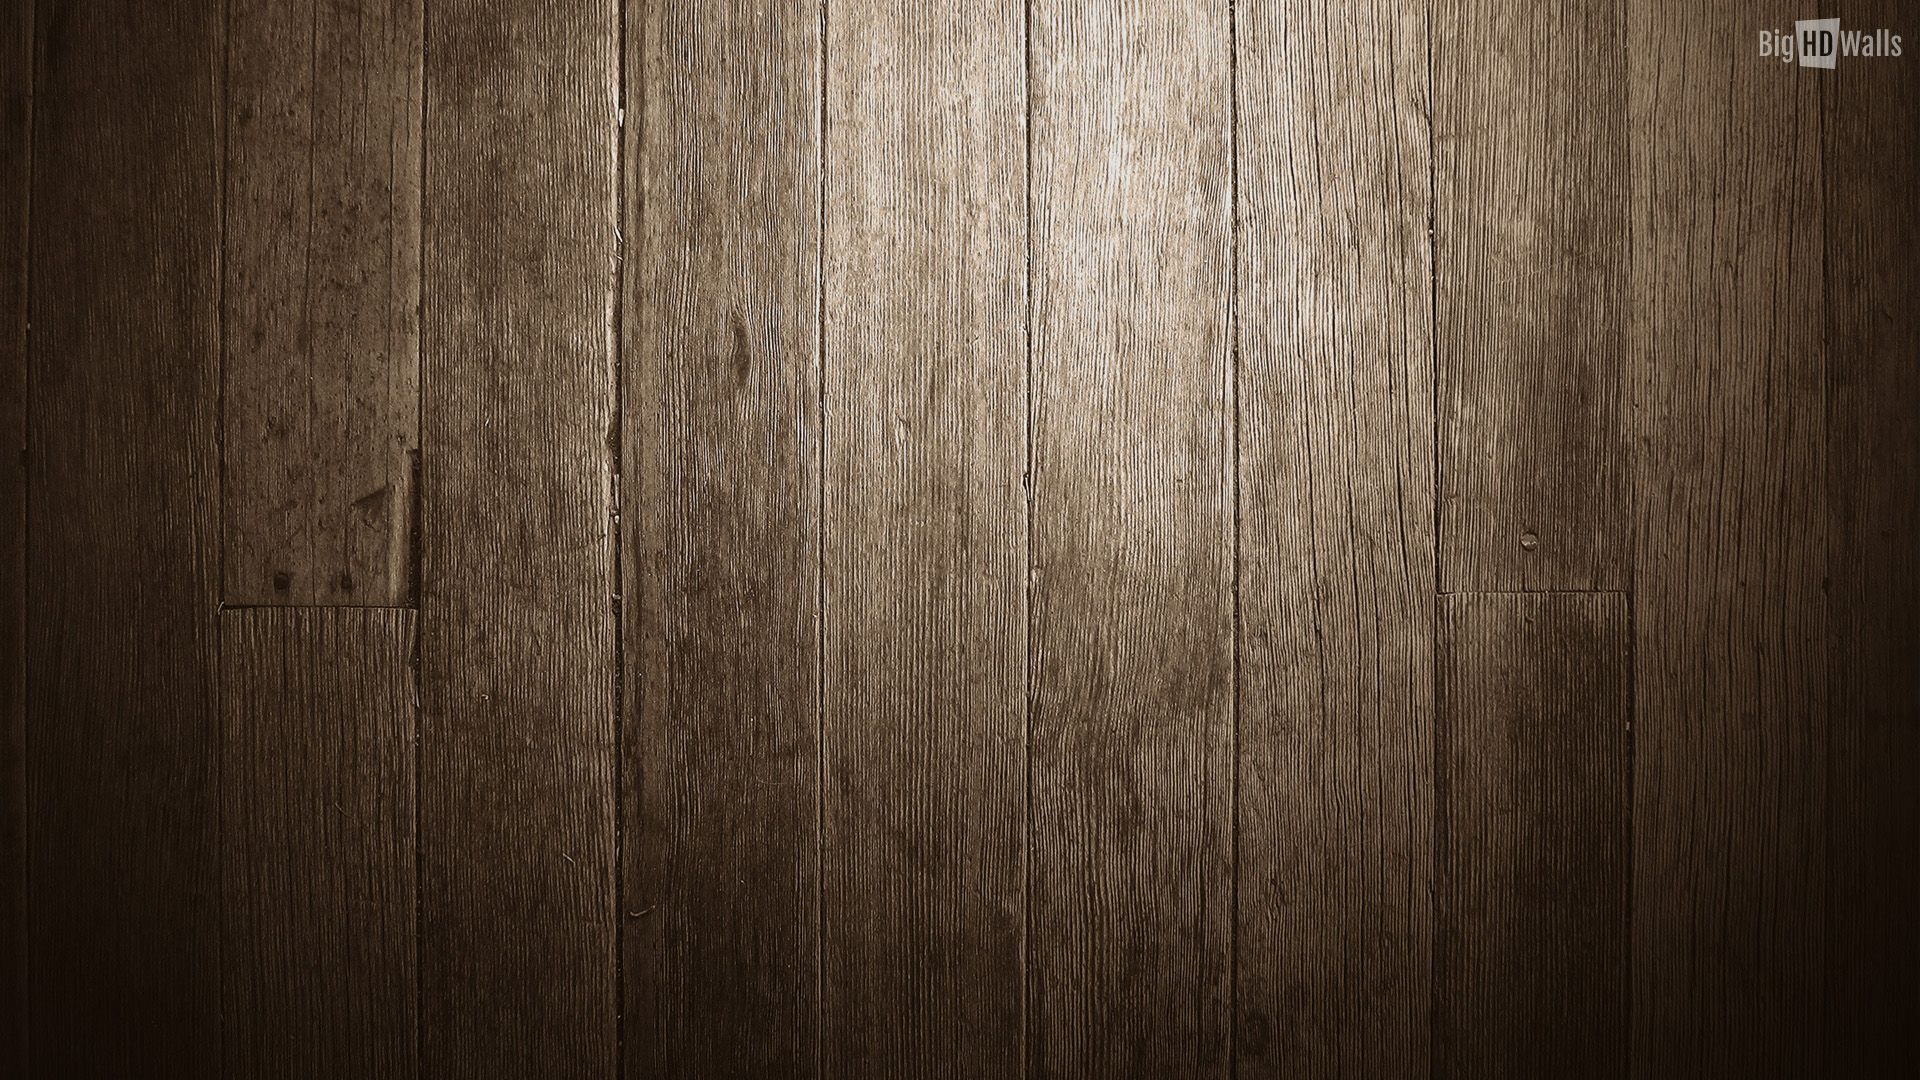 Wooden Plank Texture Hd Wall008 Jpg 1920 1080 Desktop Wallpapers Backgrounds Rustic Wallpaper Wood Patterns